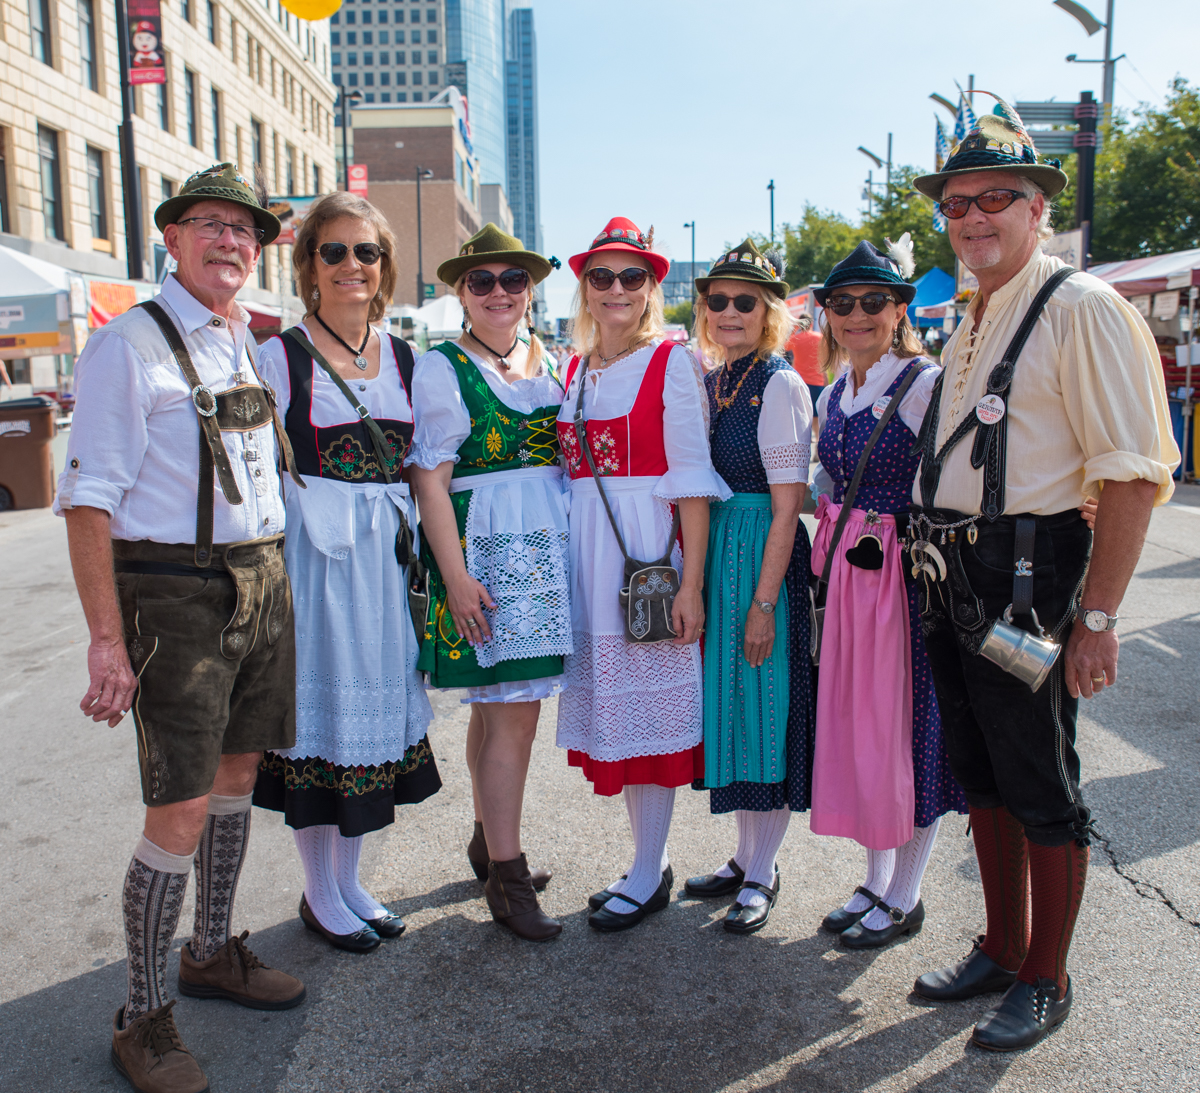 People: Lonnie and Janet Jamison, Camile Baker, Cheryl Baker, Susan Smith, and Nancy and David Grosshans / Event: Oktoberfest Zinzinnati / Image: Sherry Lachelle Photography / Published: 10.1.17